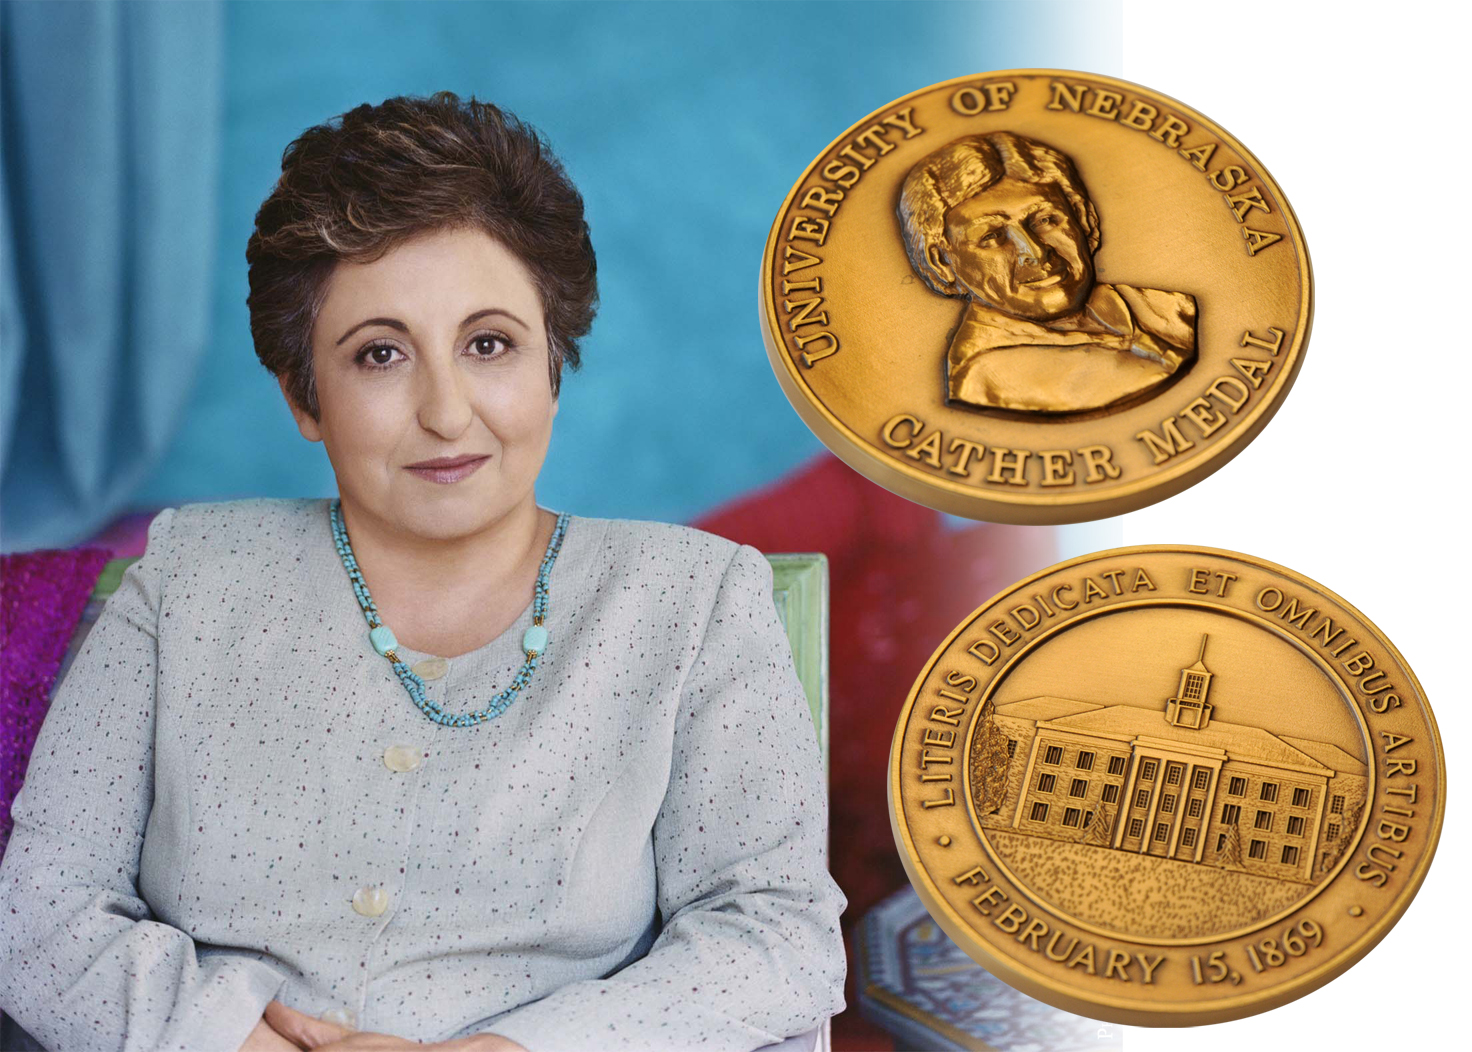 Shirin Ebadi, a human rights activitst and Nobel Peace Prize winner, will receive a Cather Medal from UNL.